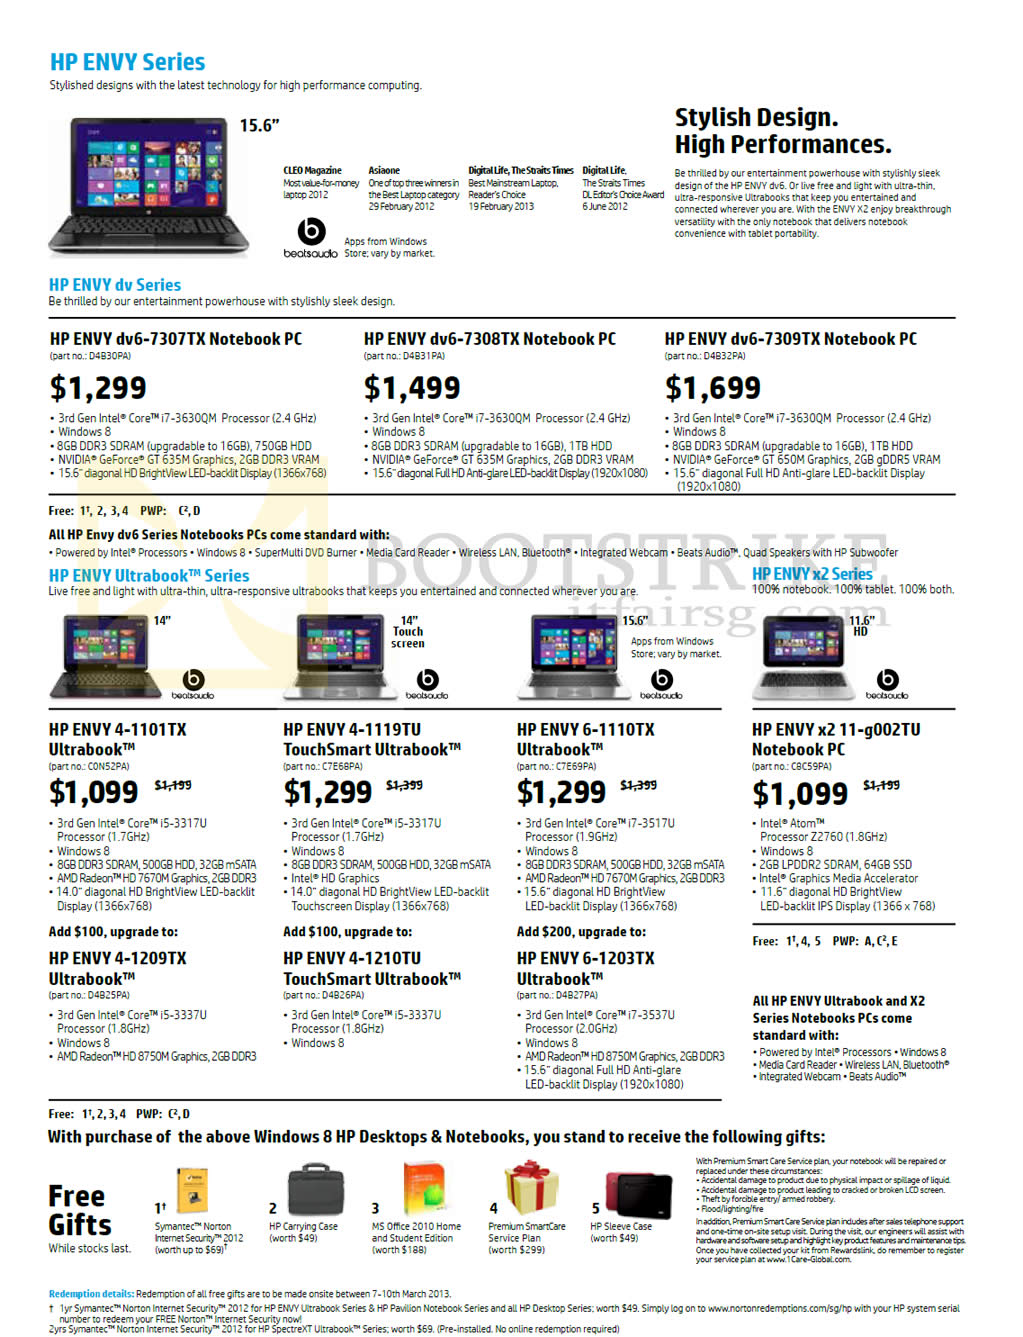 IT SHOW 2013 price list image brochure of HP Notebooks Ultrabooks Dv6-7307Tx, 7308TX, 7309TX, Envy 4-1101TX, 4-1119TU, 6-1110TX, X2 11-g002TU